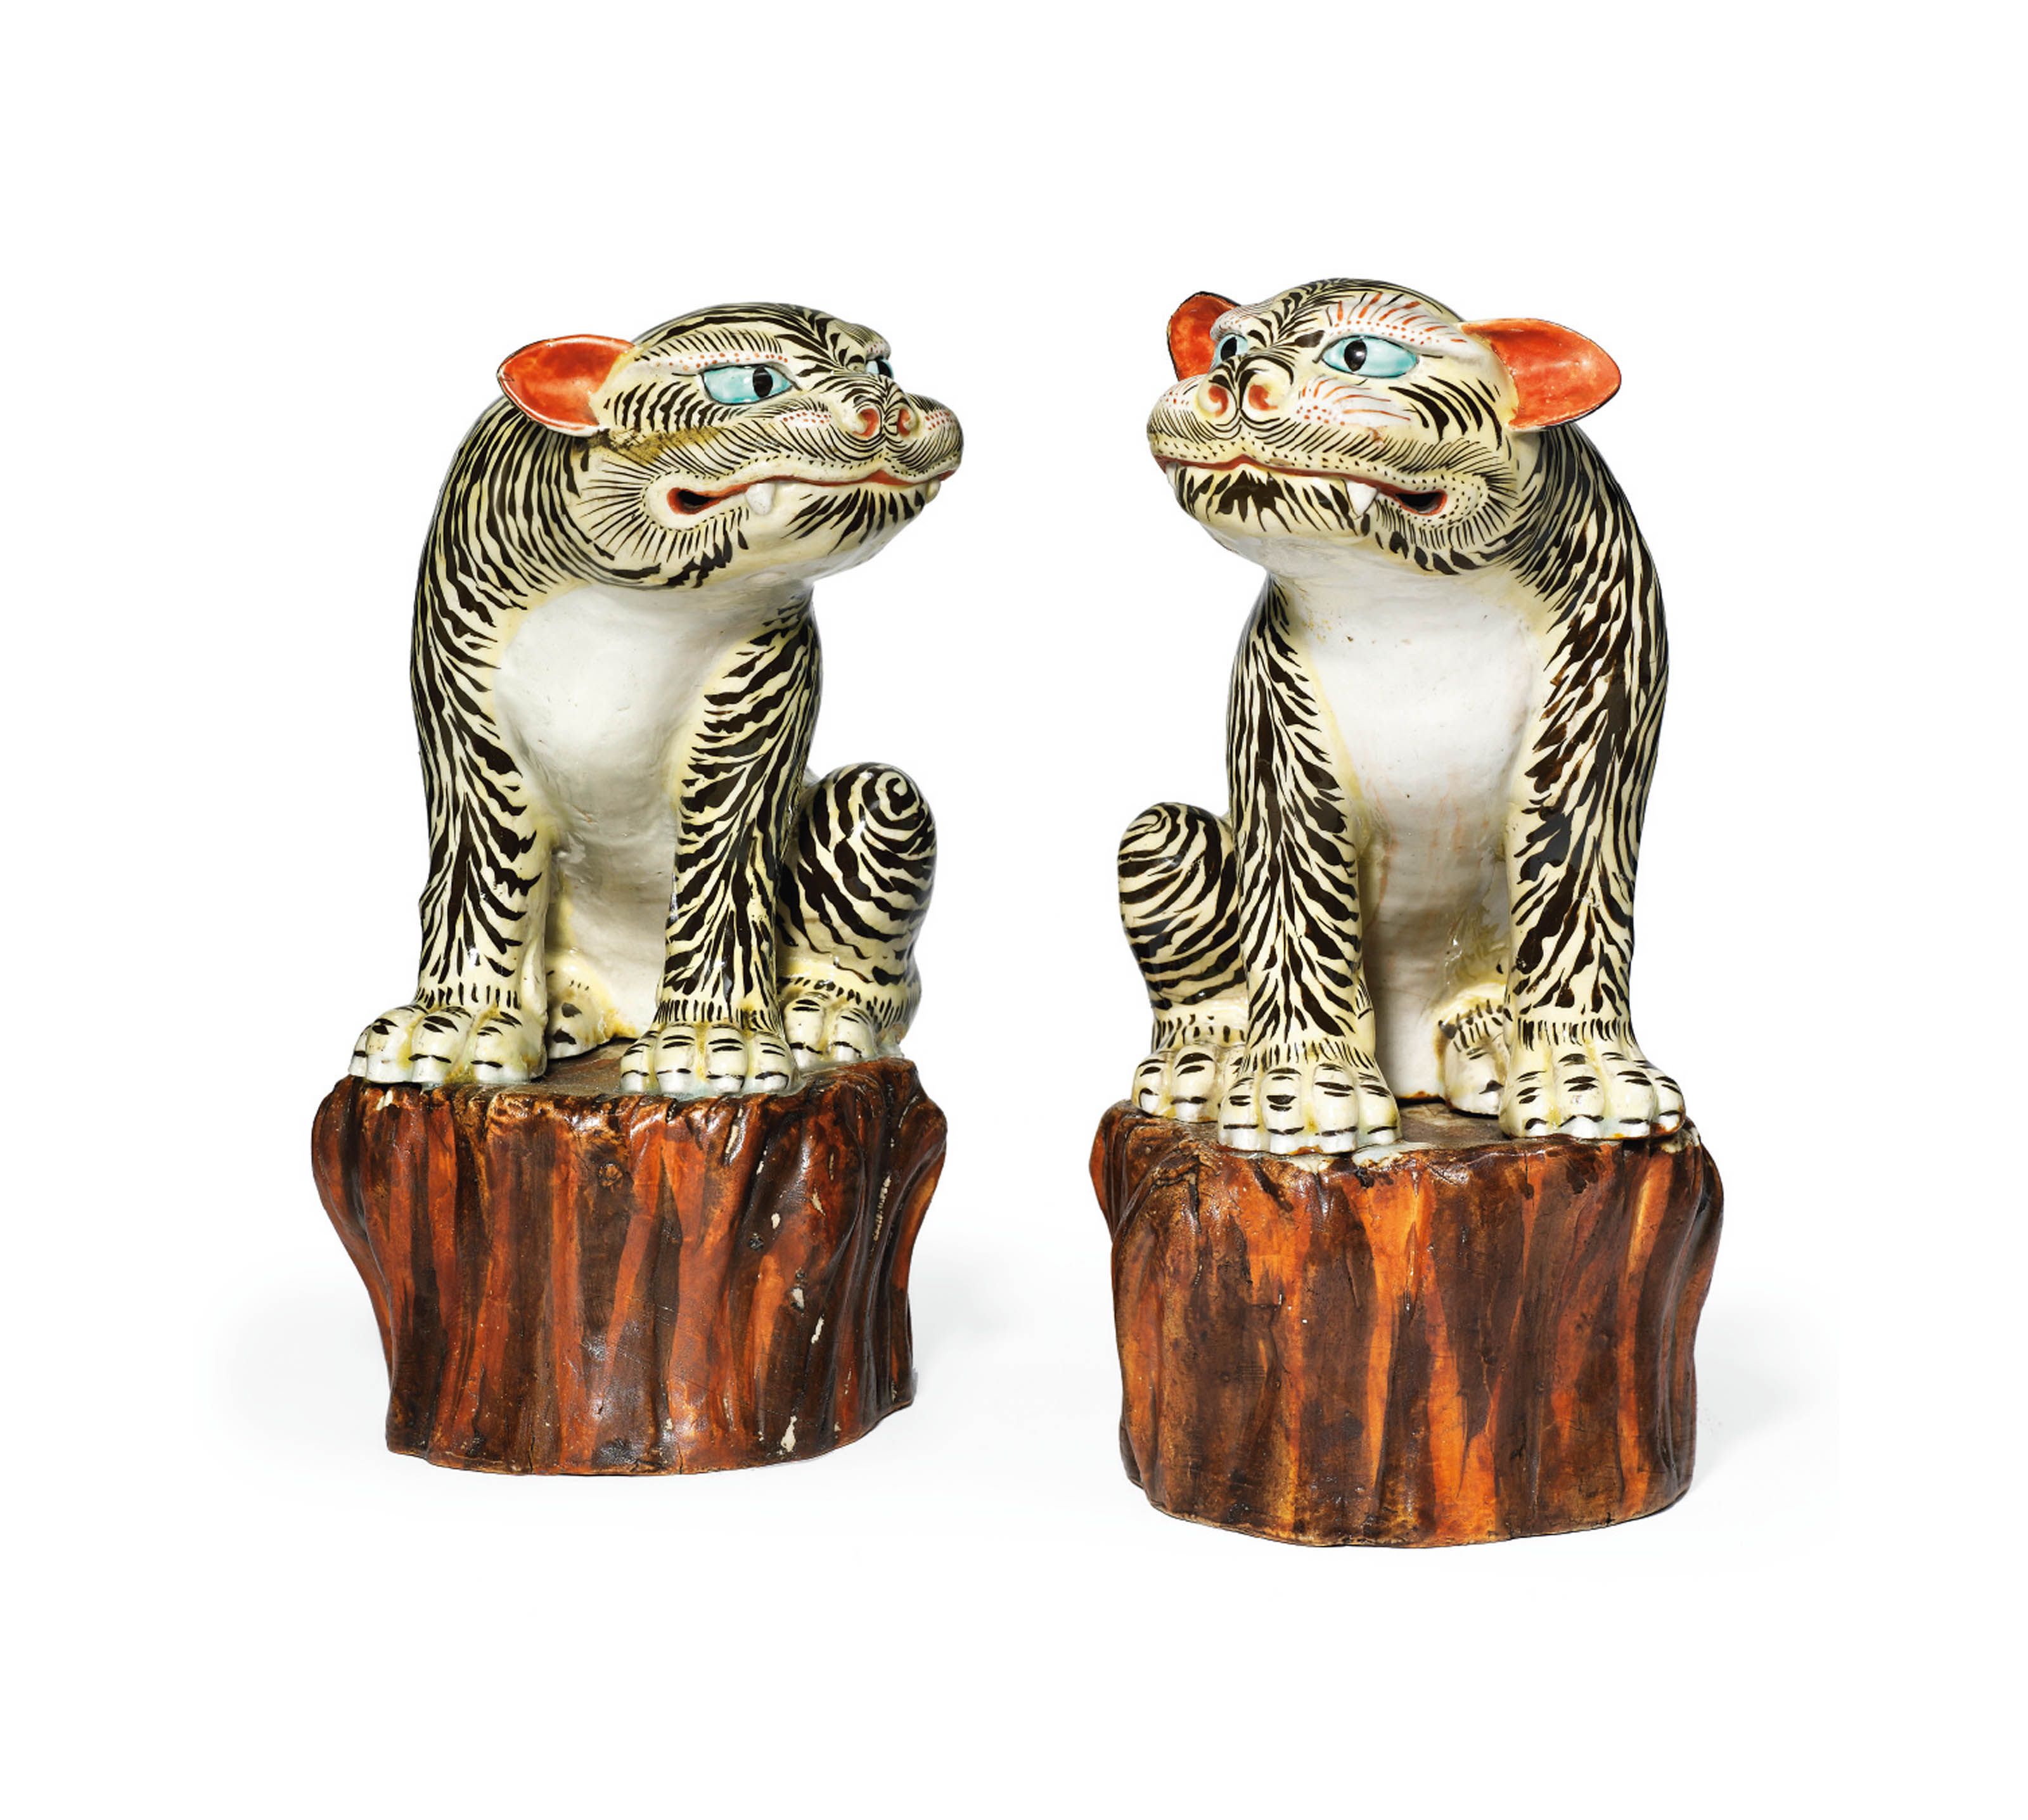 A Rare Pair of Kakiemon Models of Tigers